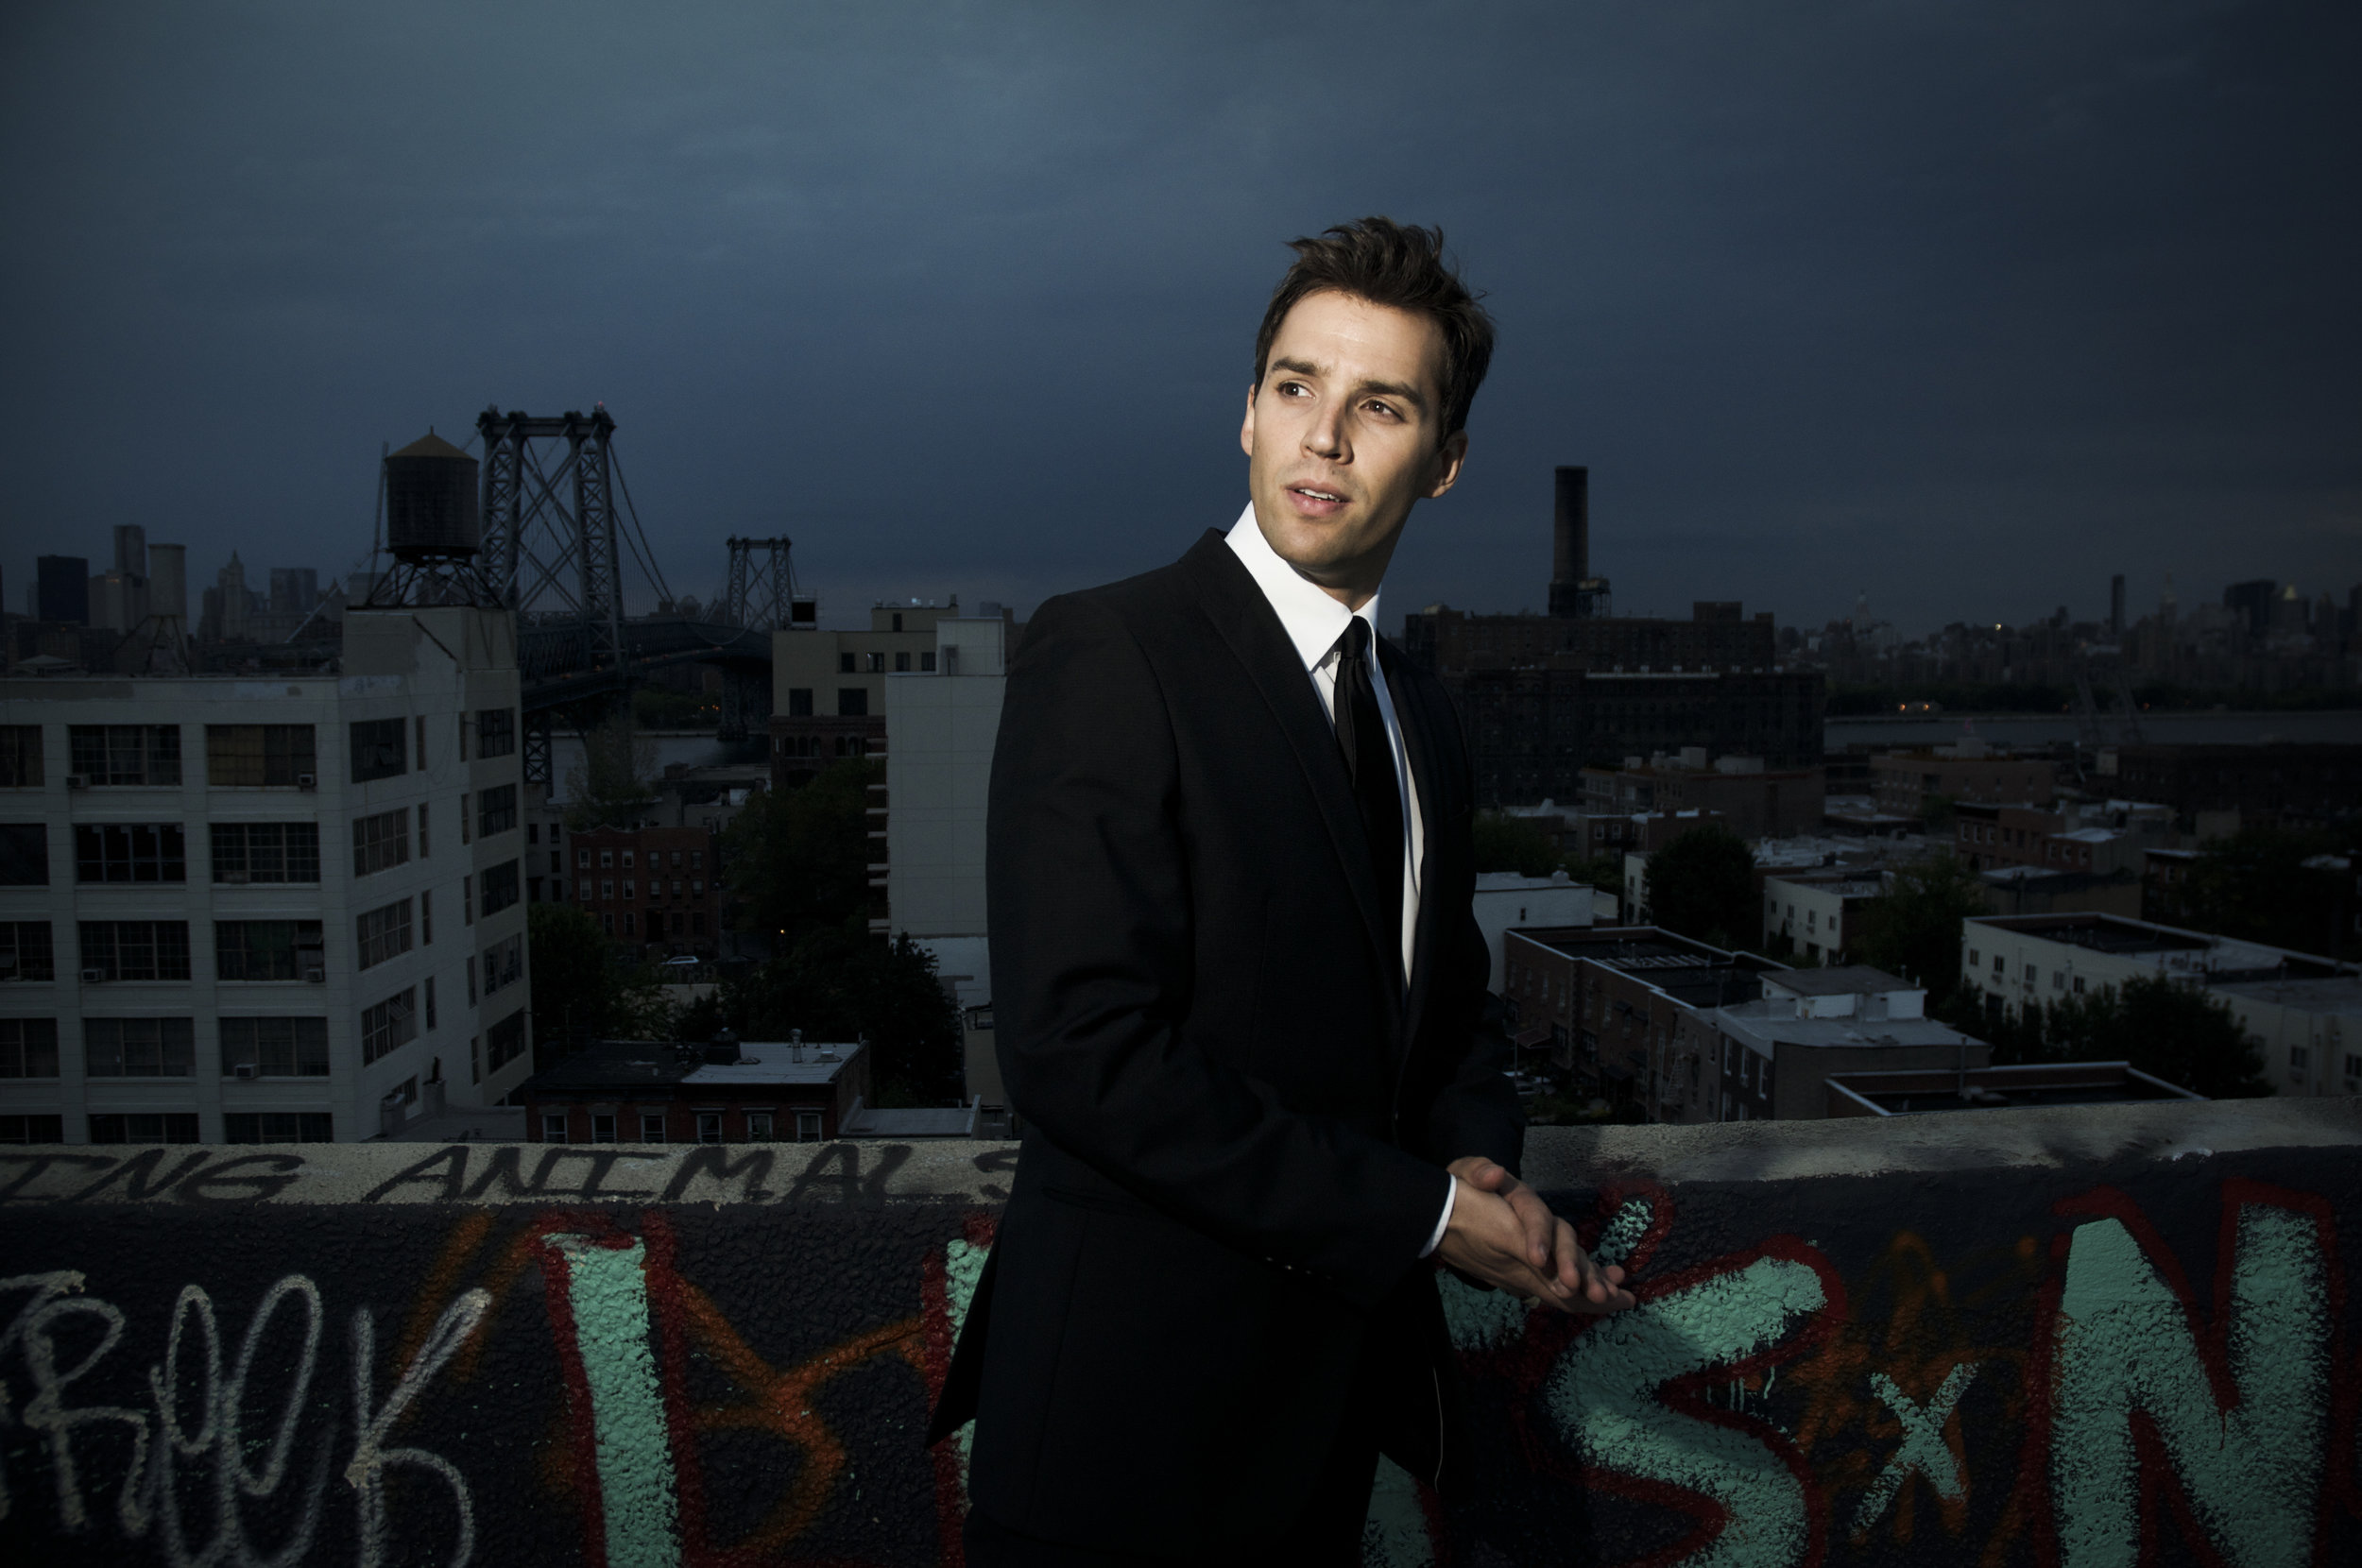 Ryan Silverman - Rooftop 1.jpg